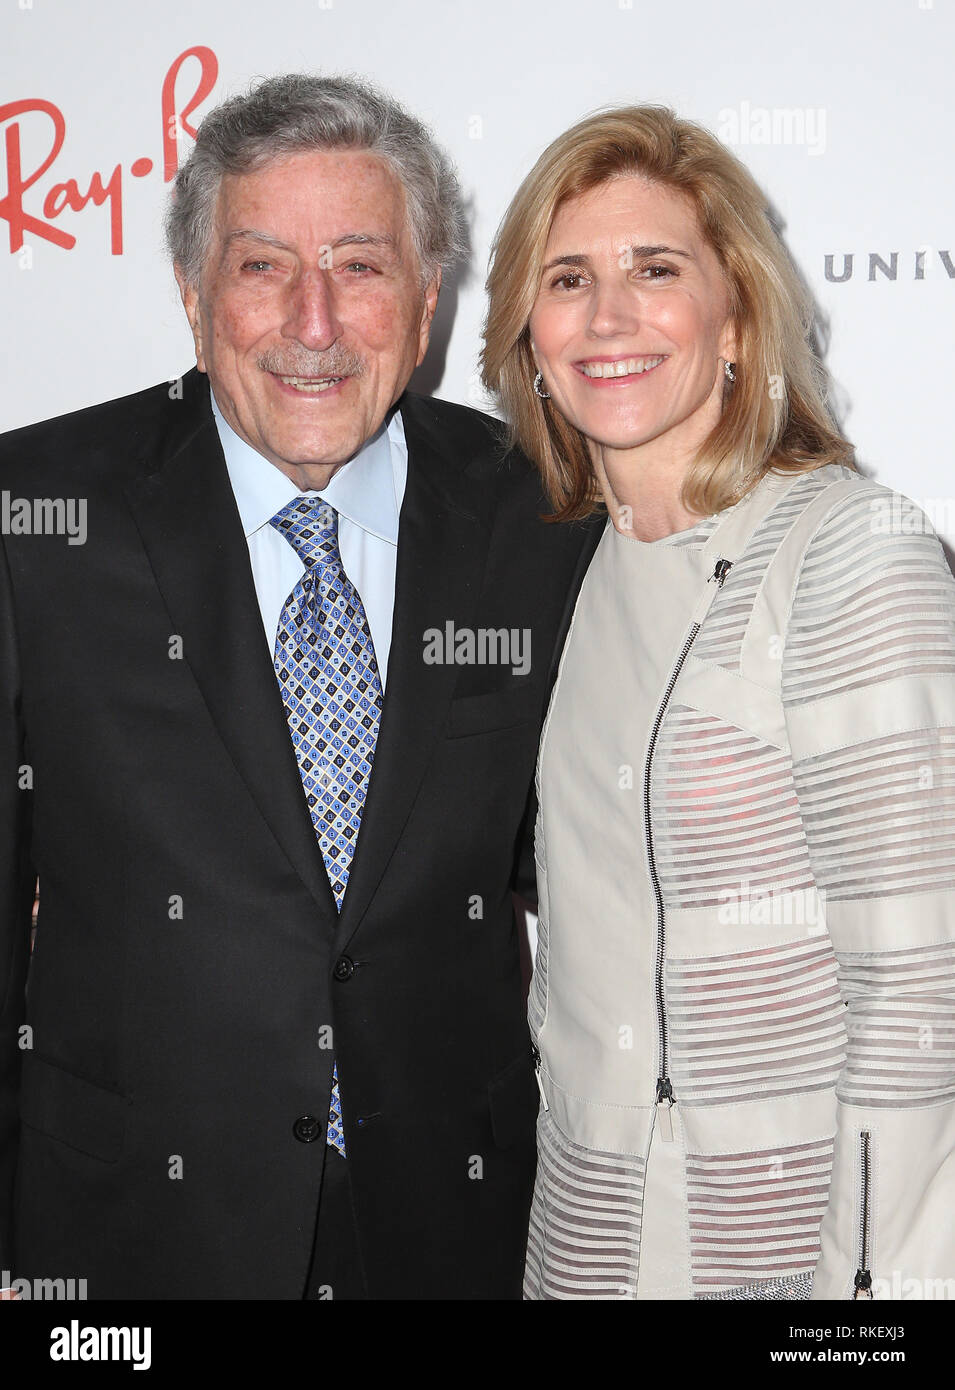 U.S. 10th Feb, 2019. 10 February 2019 - Los Angeles, California - Tony Bennett, Susan Crow. Universal Music Group GRAMMY After Party celebrating the 61st Annual Grammy Awards held at The Row. Photo Credit: Faye Sadou/AdMedia Credit: AdMedia/ZUMA Wire/Alamy Live News - Stock Image